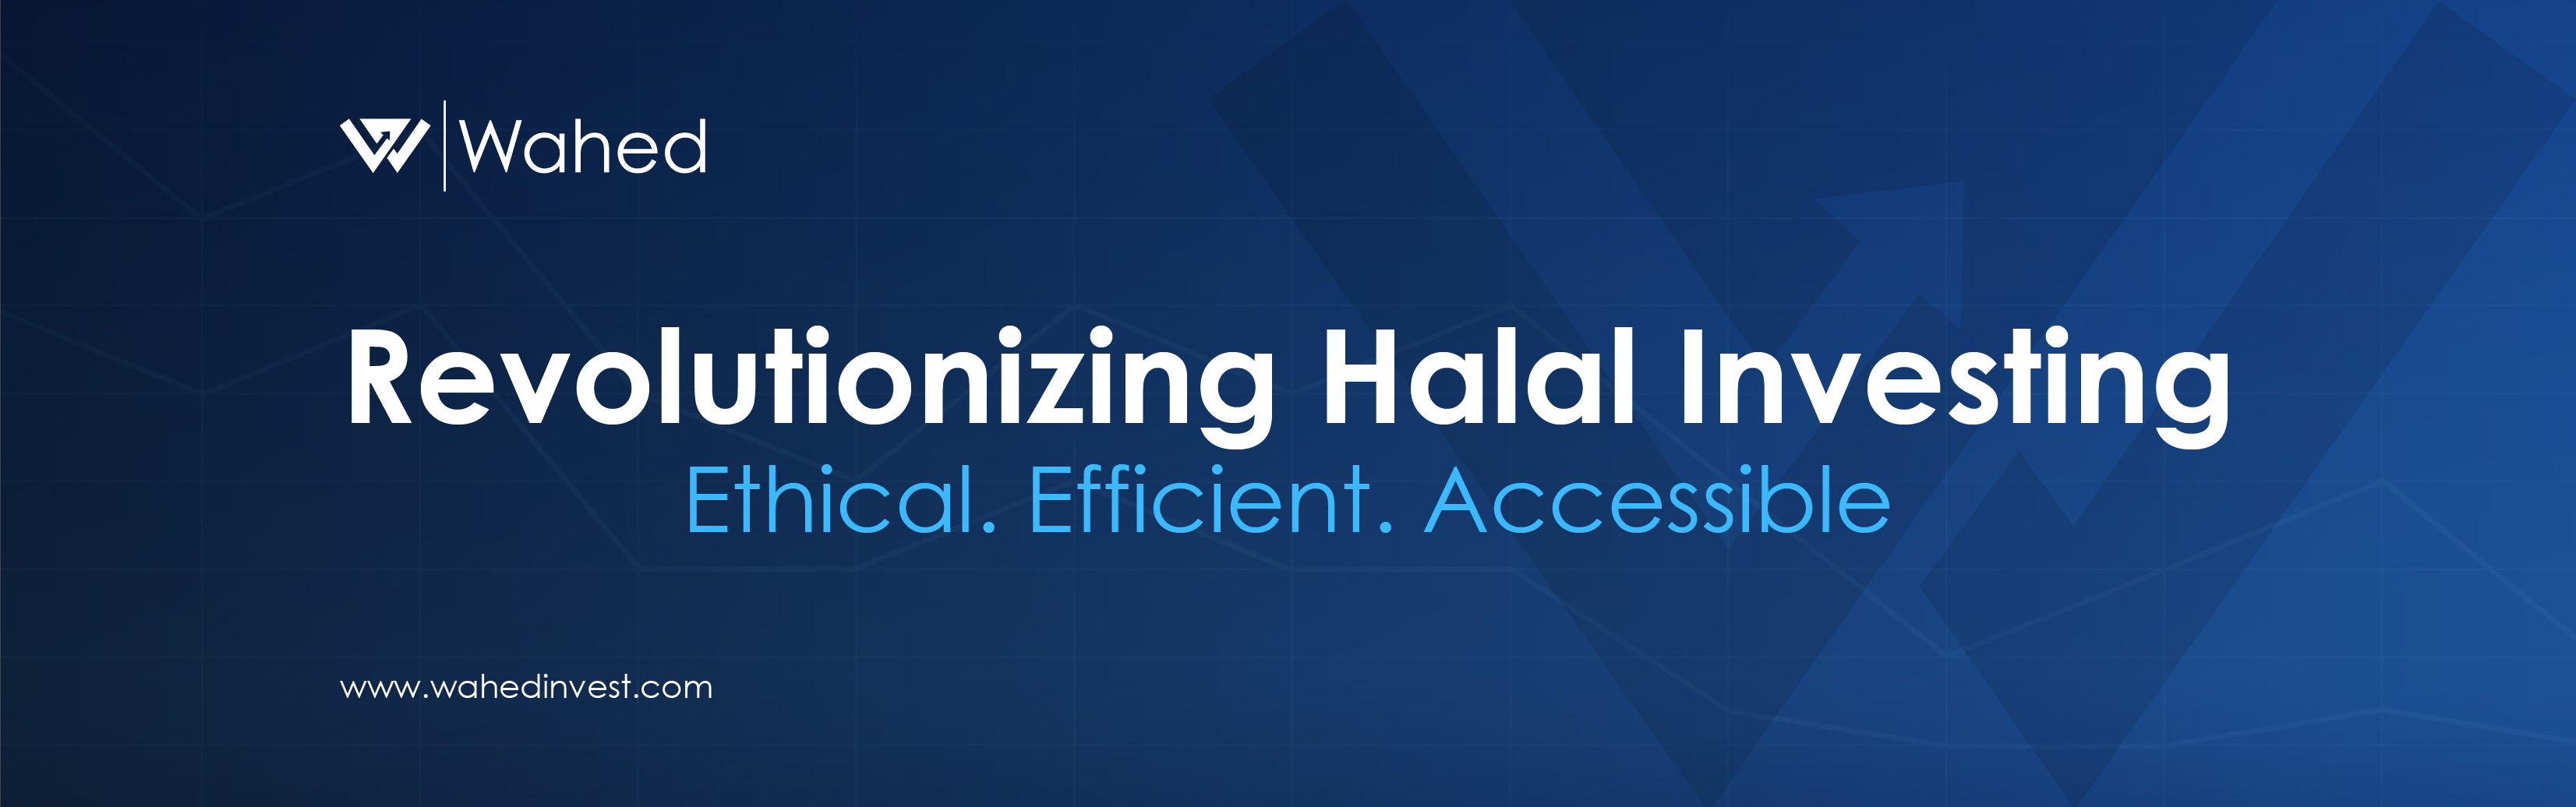 Revolutionizing Halal investment ISNA Banner copy